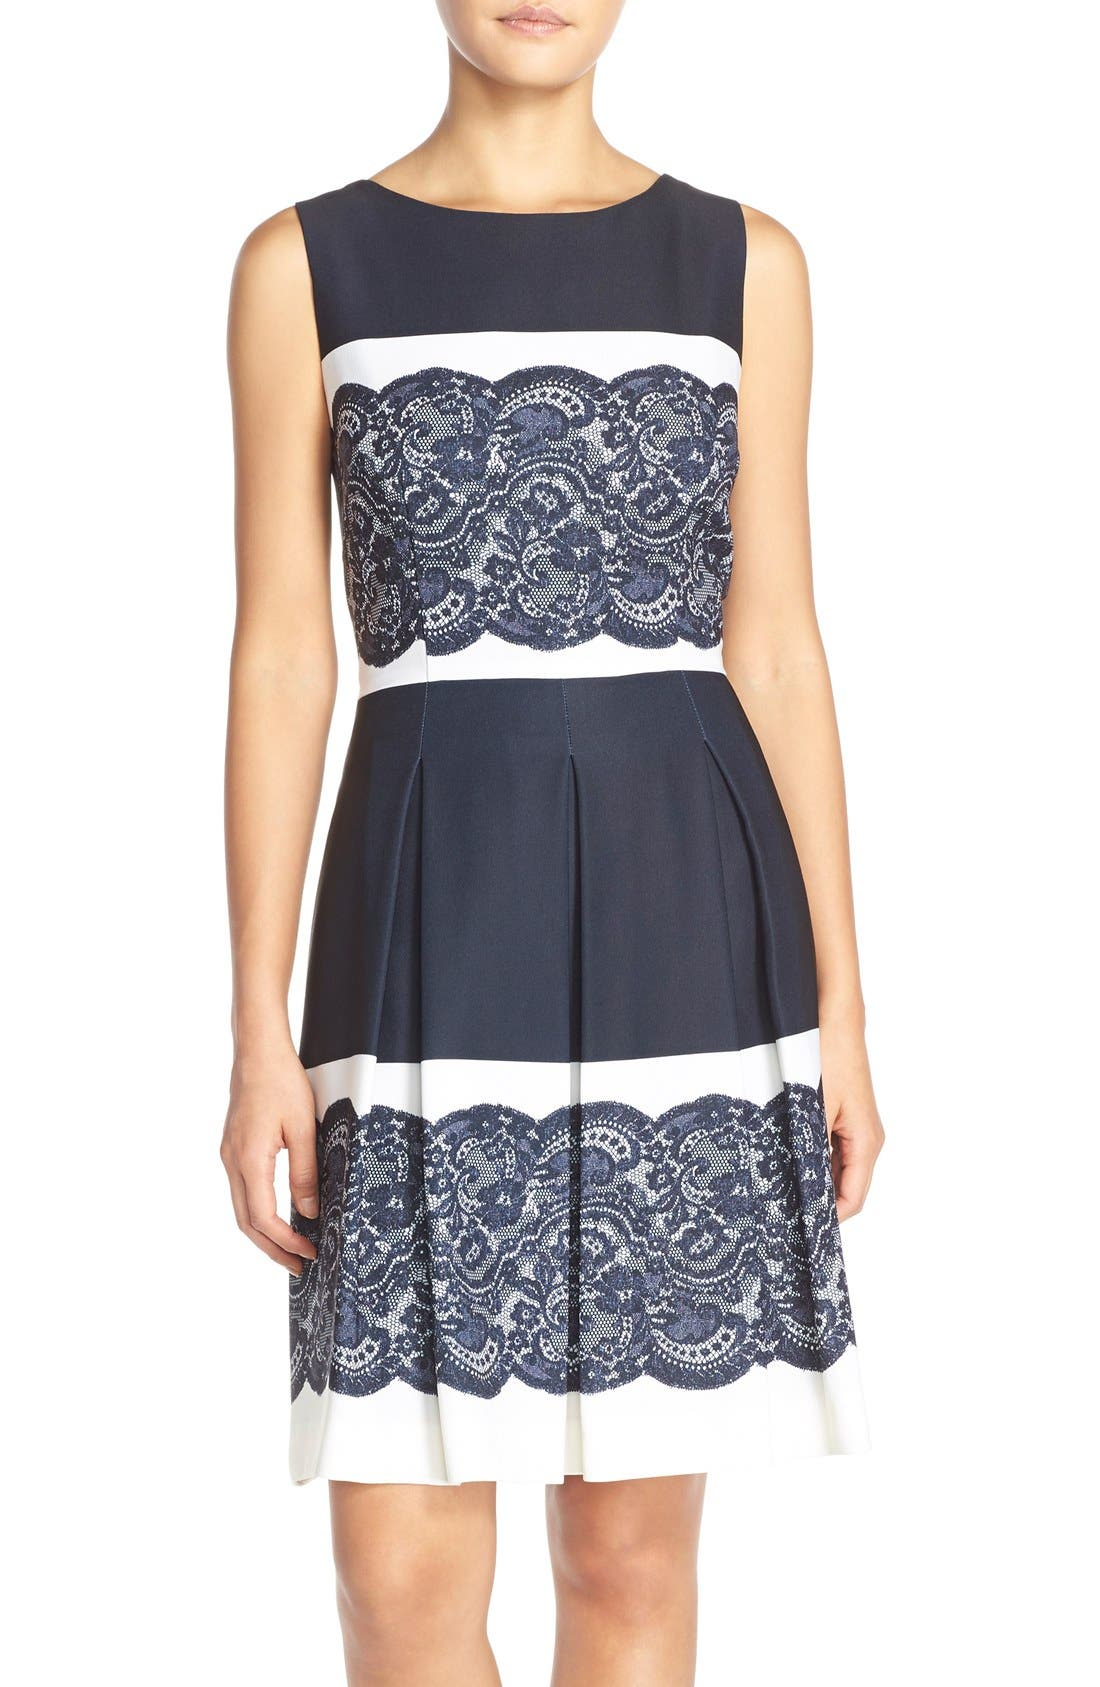 Alternate Image 1 Selected - Tahari Lace Panel Twill Fit & Flare Dress (Regular & Petite)